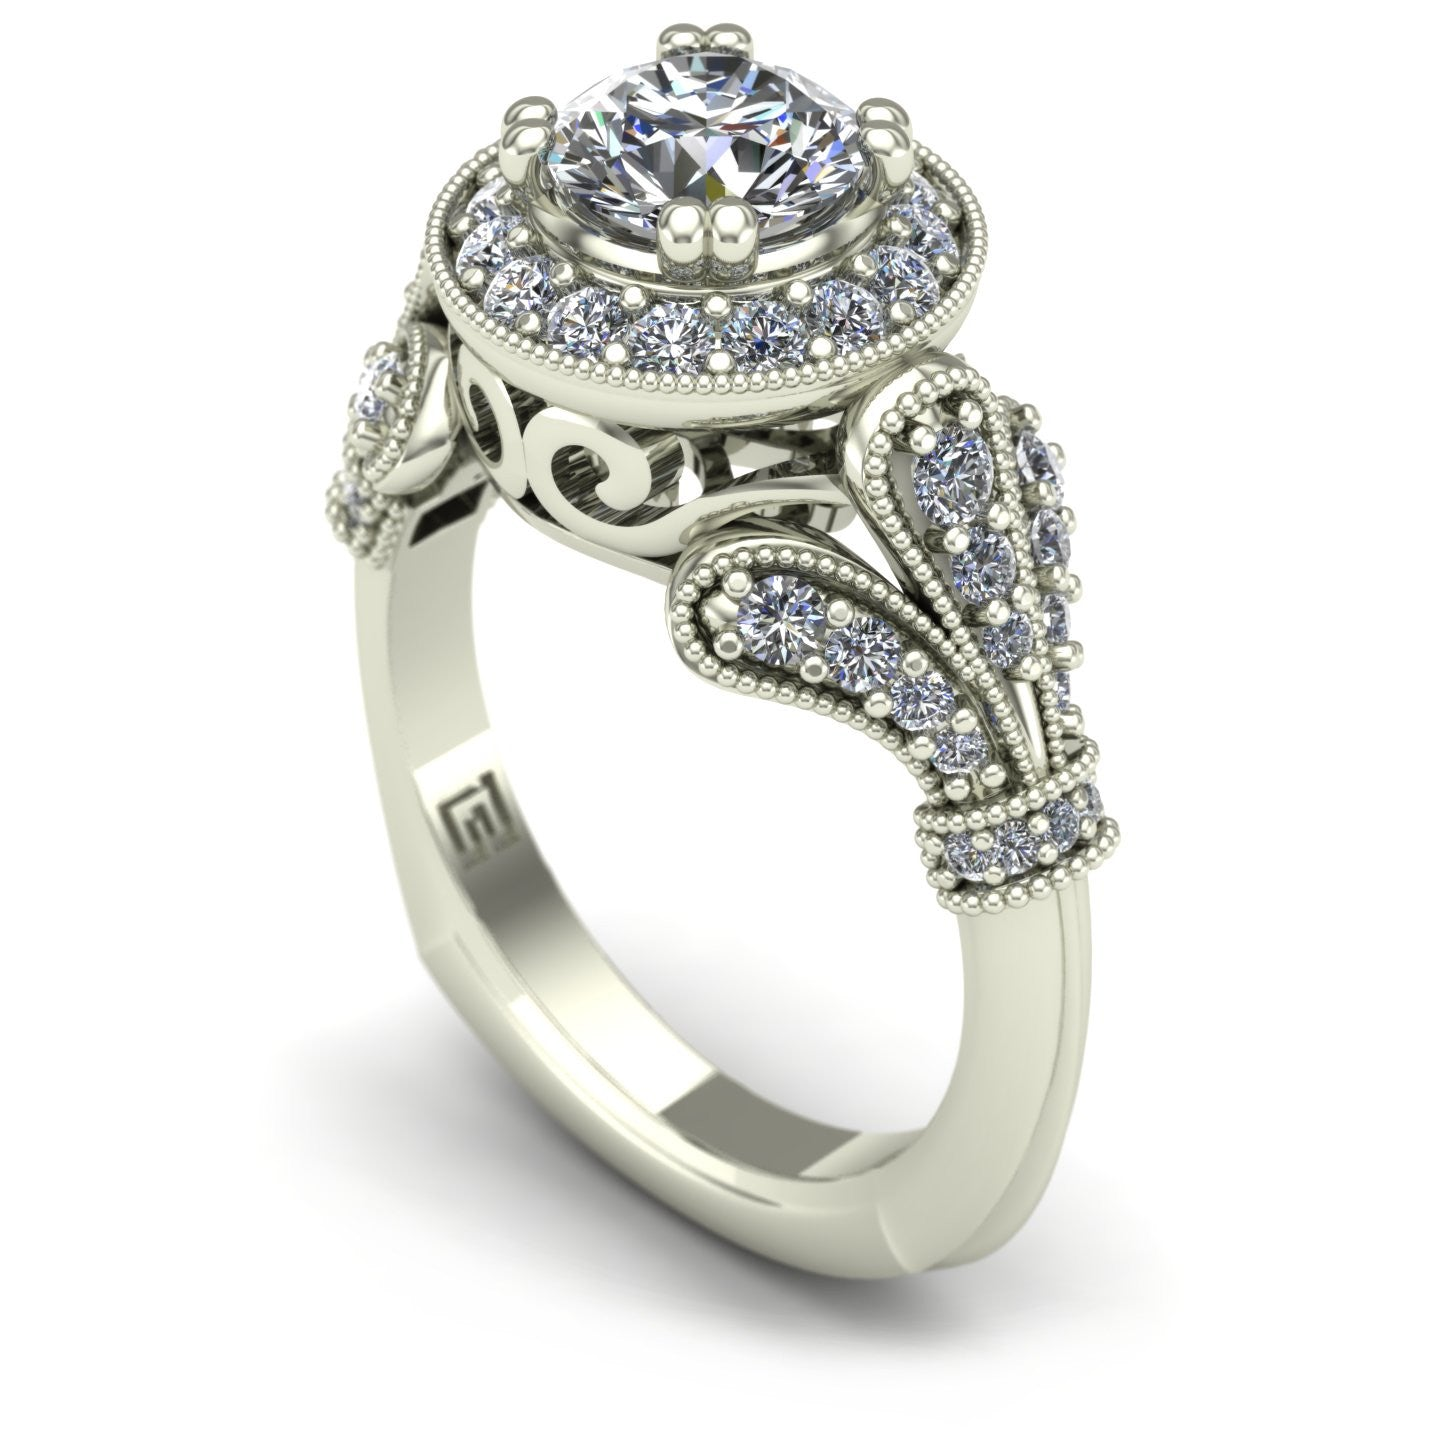 Diamond engagement ring in 14k white gold